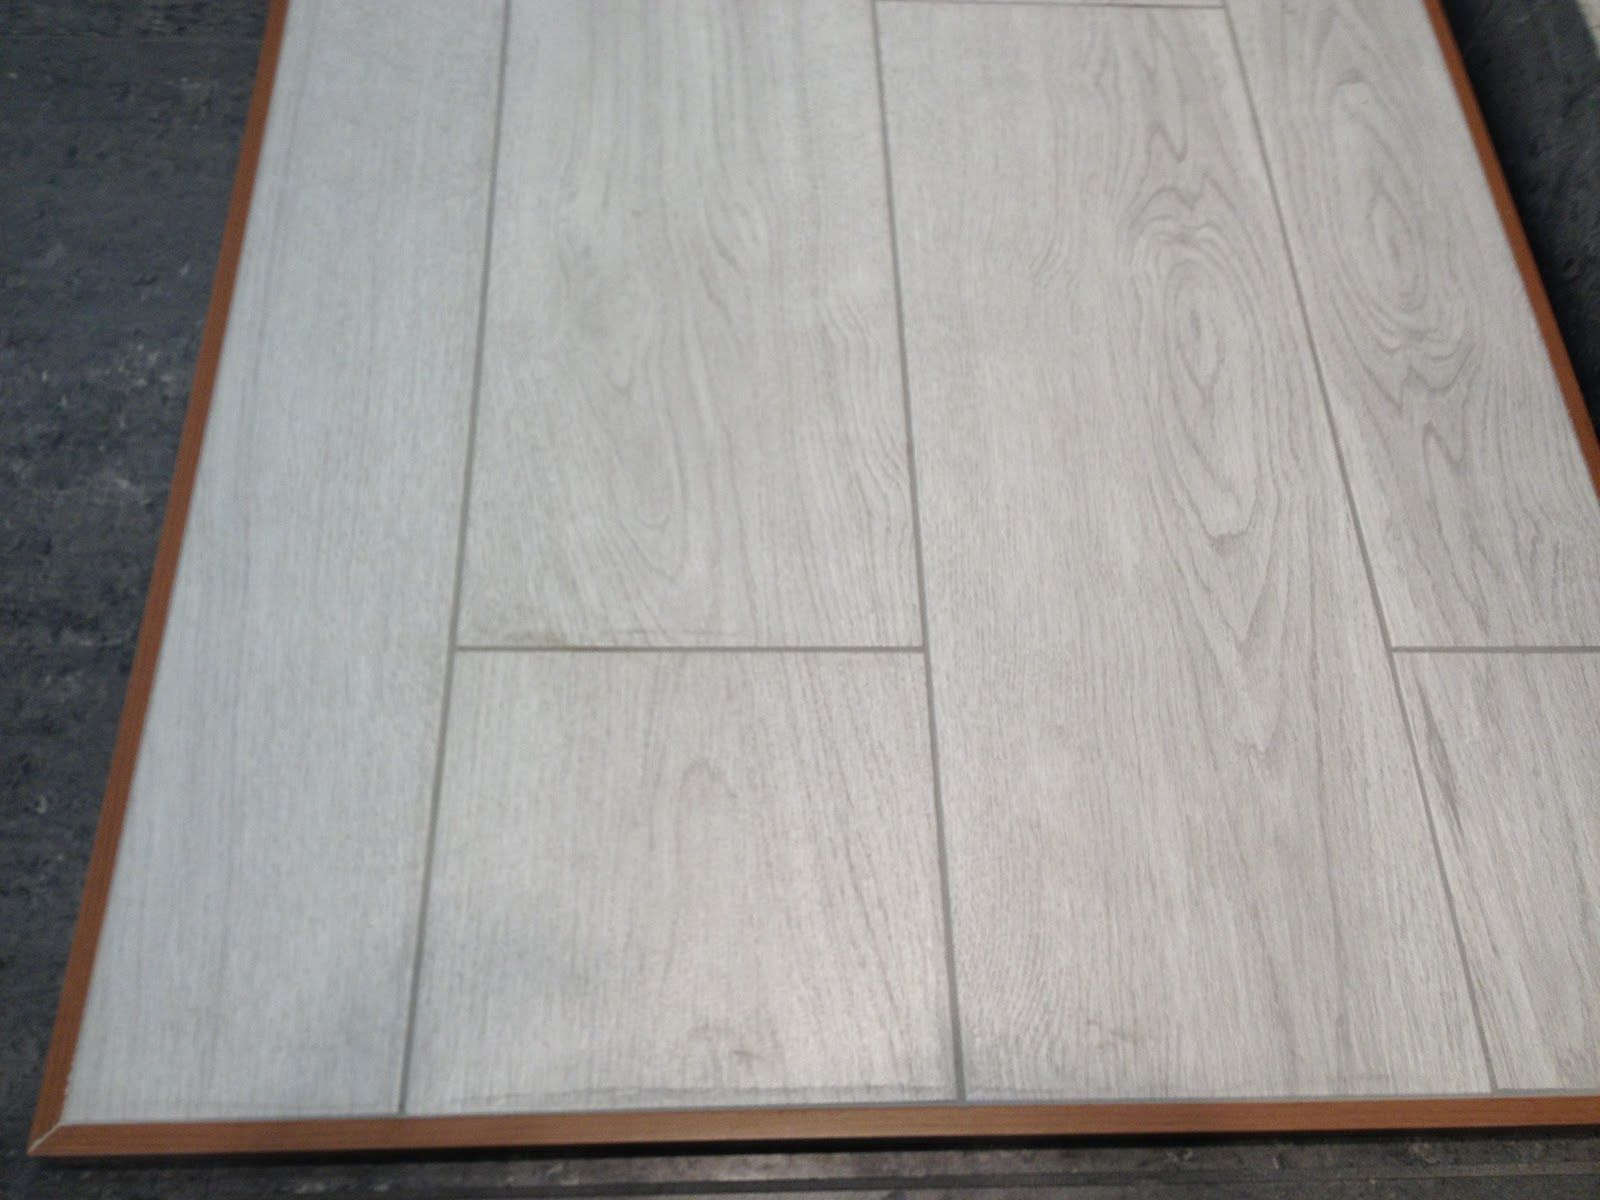 Decoration Ideas Exciting White Natural Wood Look Tile Flooring For Bathroom Floor Or Oudoor Room